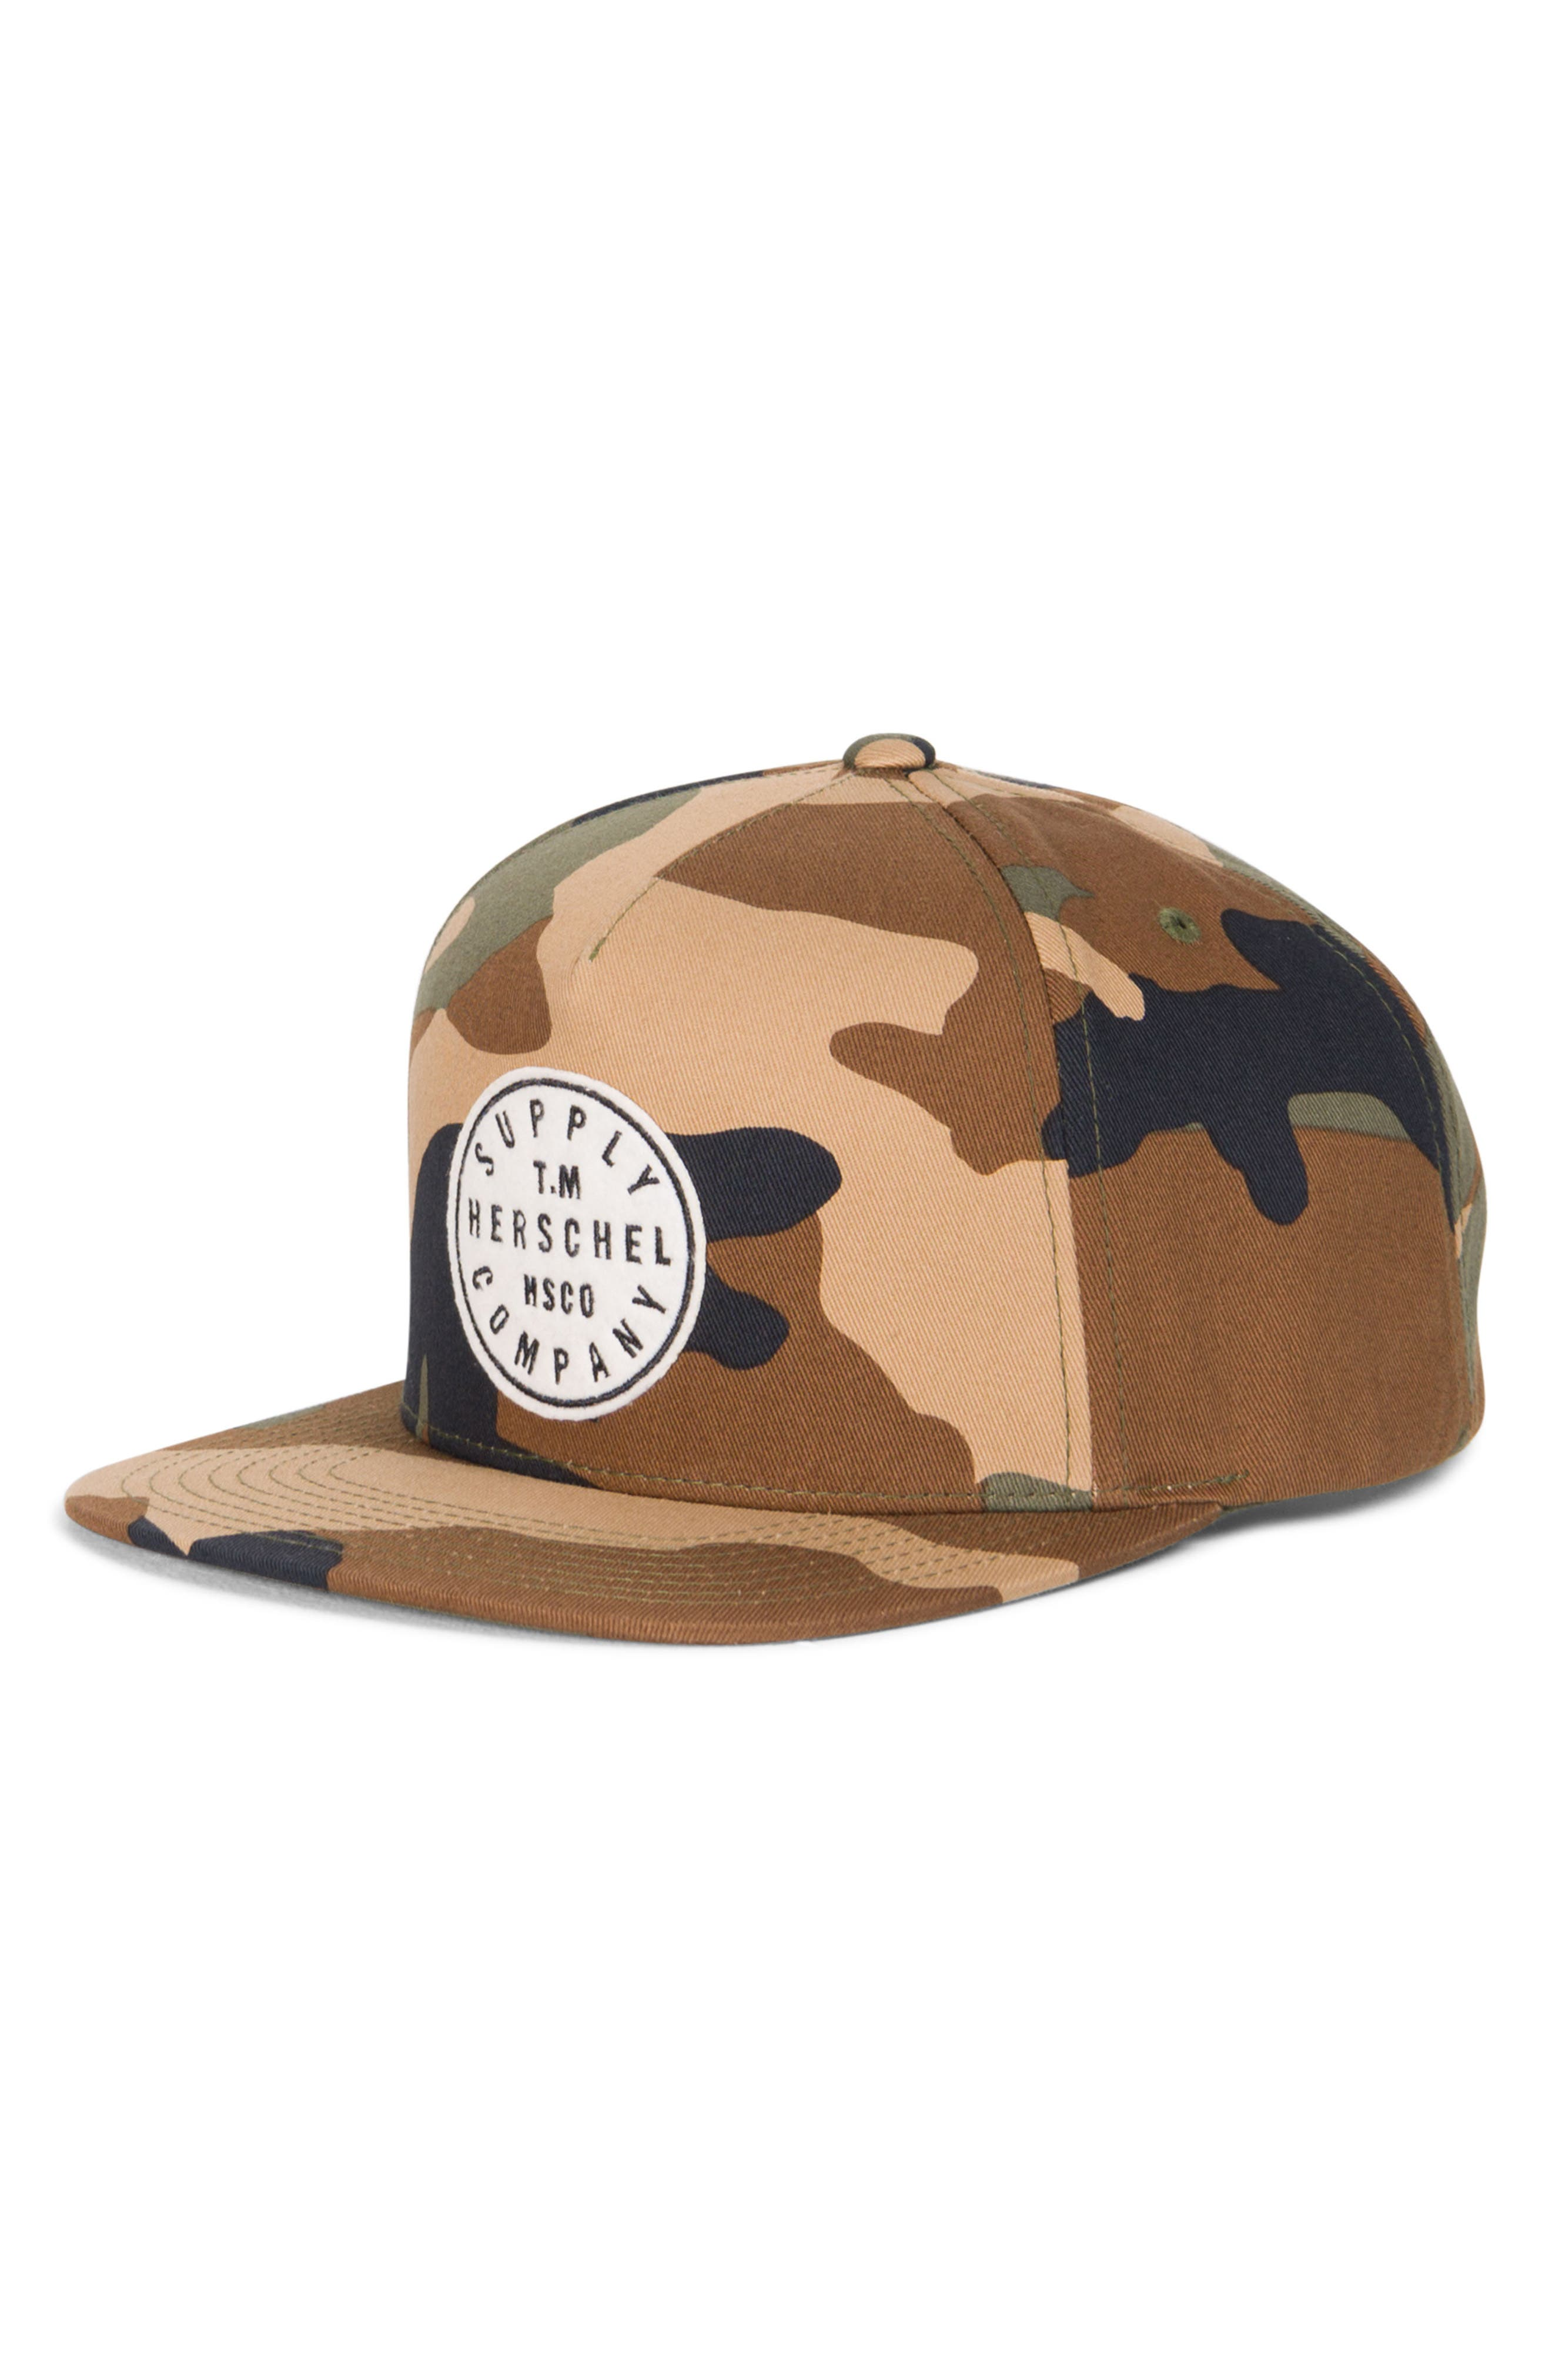 Camo Snapback Baseball Cap,                             Main thumbnail 1, color,                             Woodland Camo